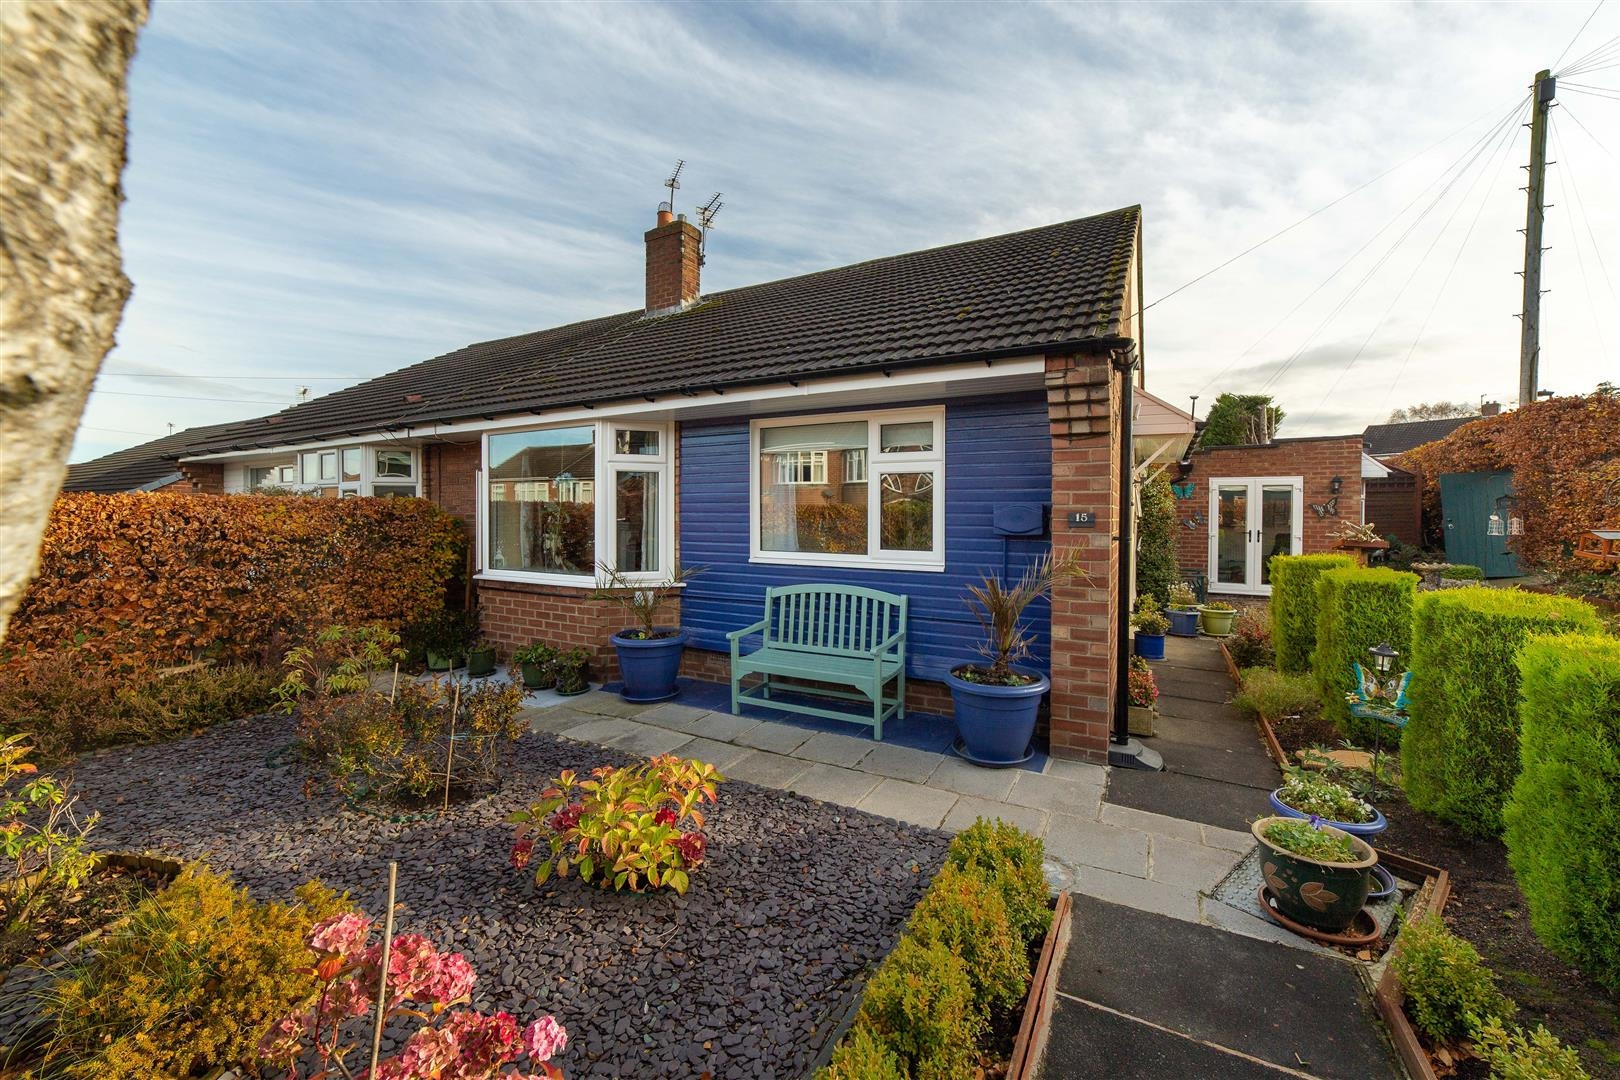 2 bed semi-detached bungalow for sale in Newcastle Upon Tyne, NE13 6AG, NE13